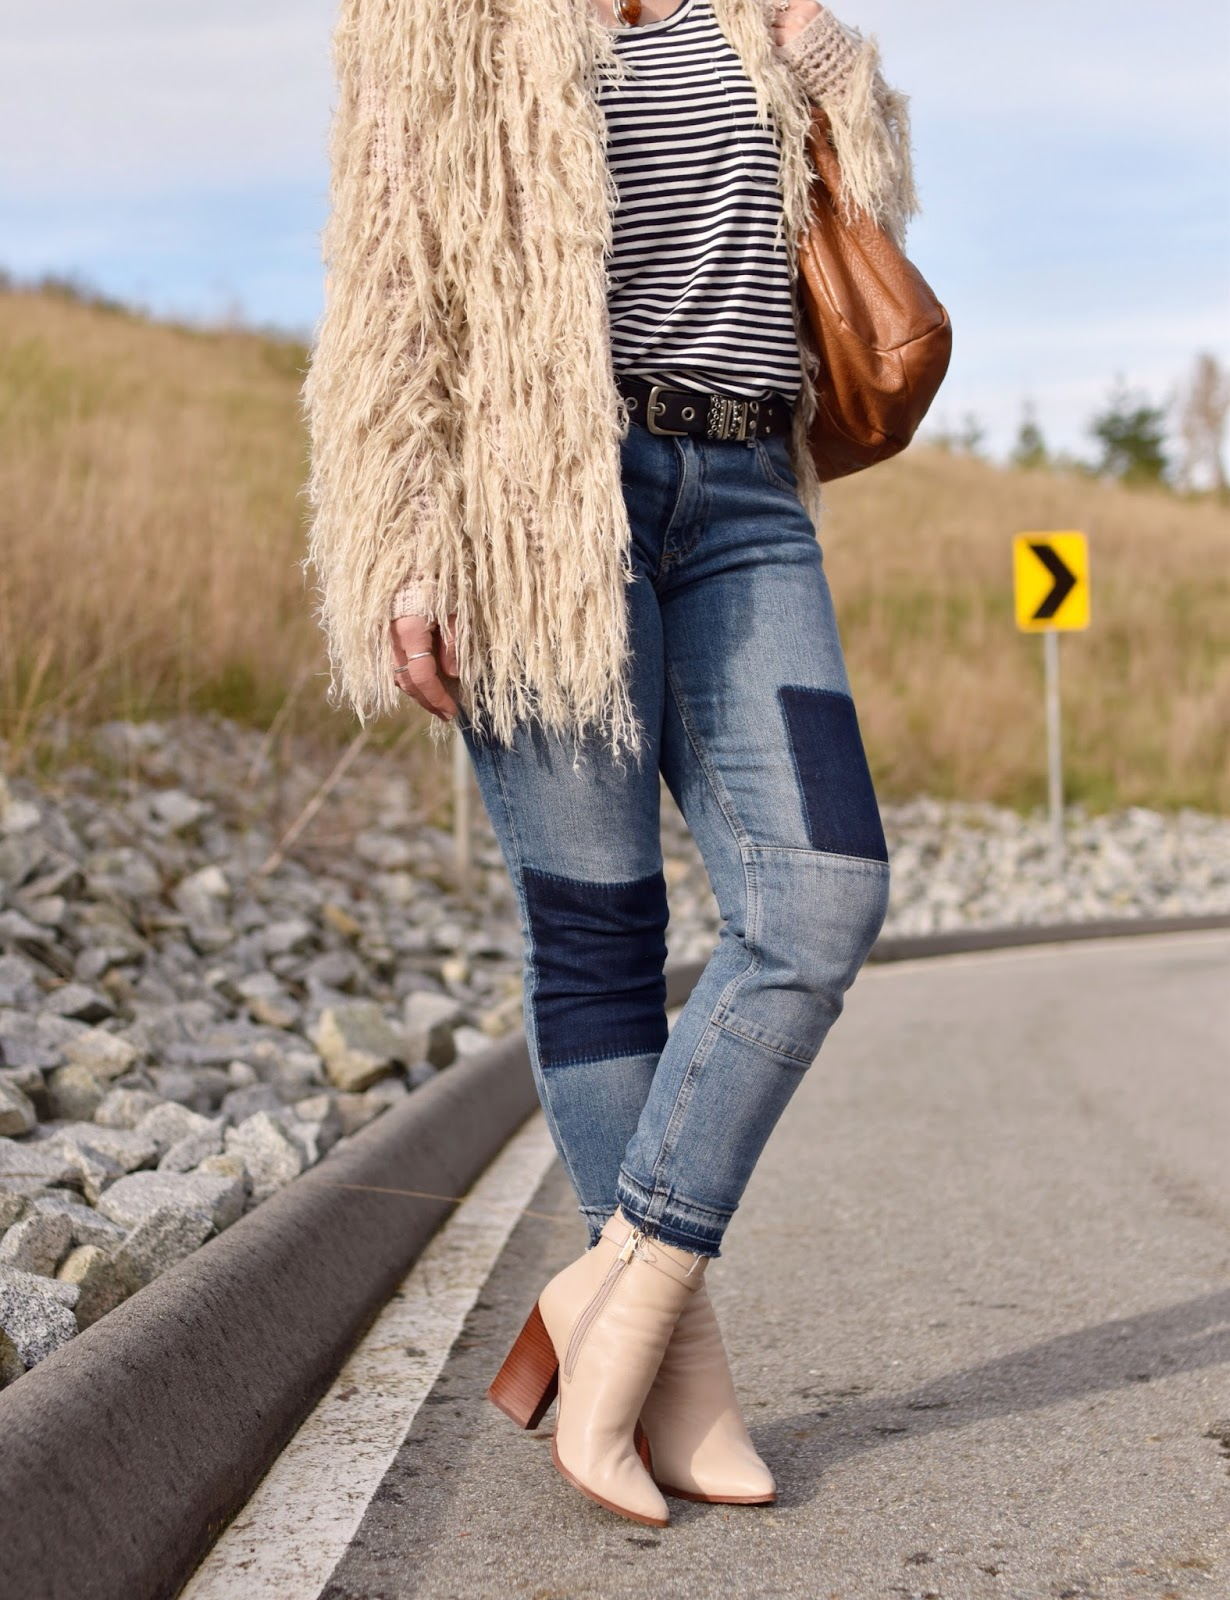 Outfit inspiration c/o Monika Faulkner - shaggy cardigan, striped tee, patchwork skinnies, ivory booties